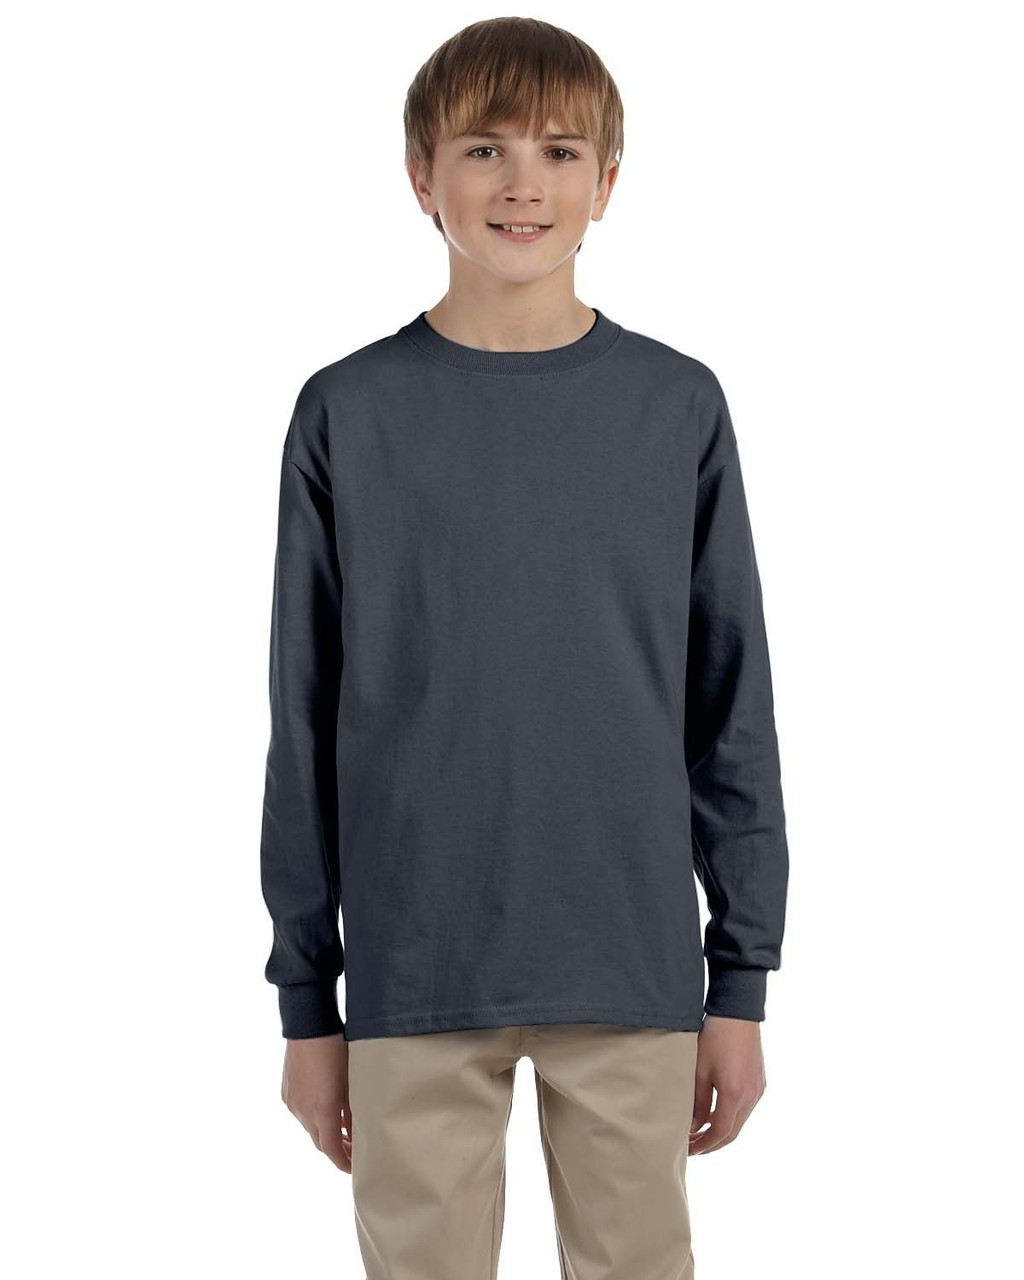 Charcoal - G240B Ultra Cotton Youth Long Sleeve T-Shirt | Blankclothing.ca